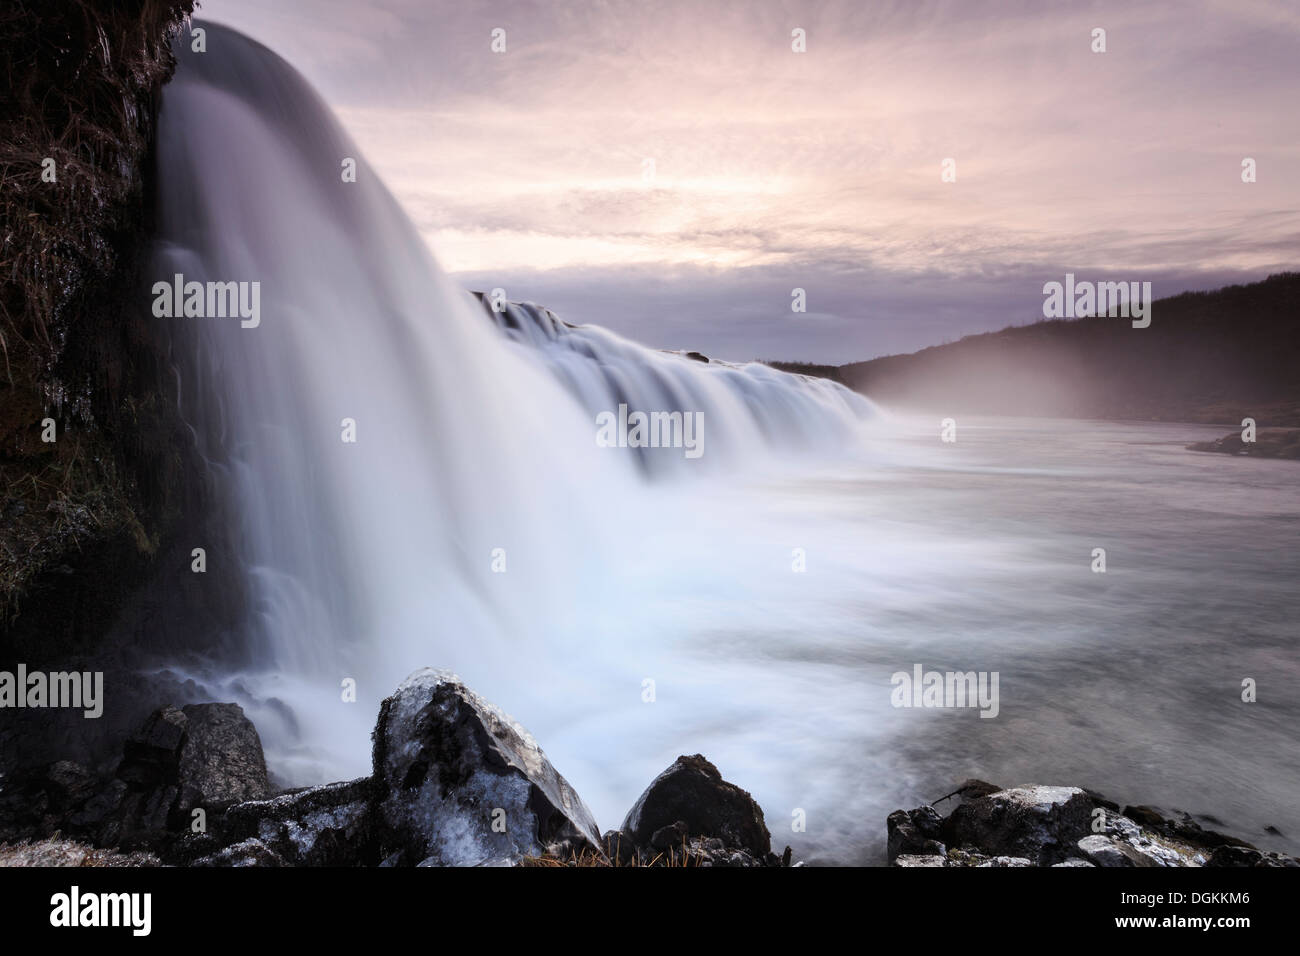 A view of the Faxifoss waterfall in southern Iceland. - Stock Image